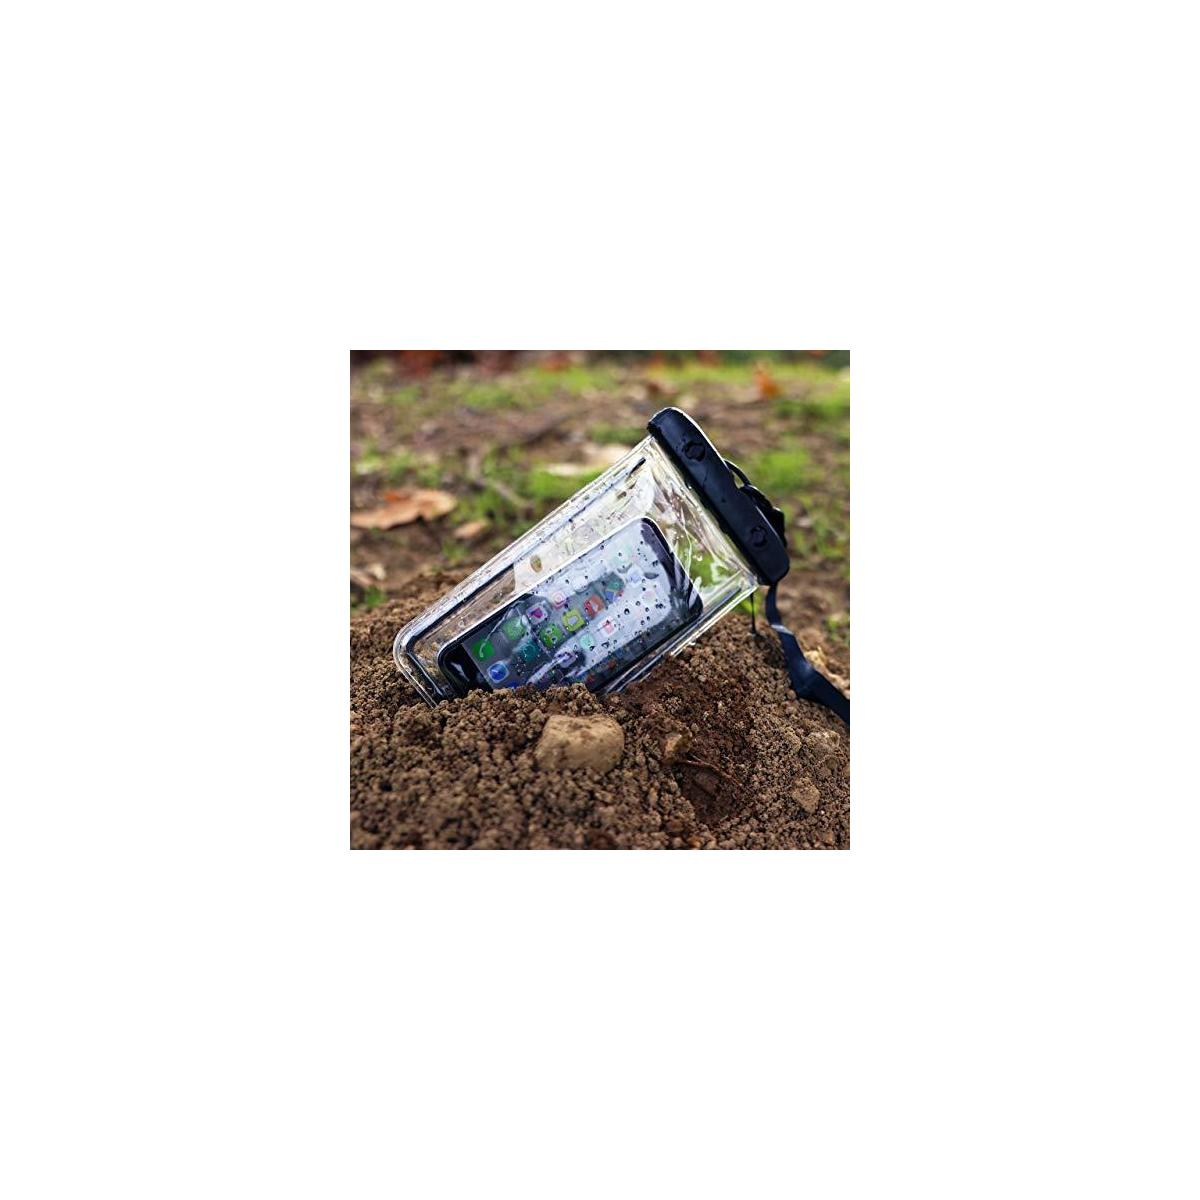 Fireproof Document Bag & Waterproof Phone Pouch